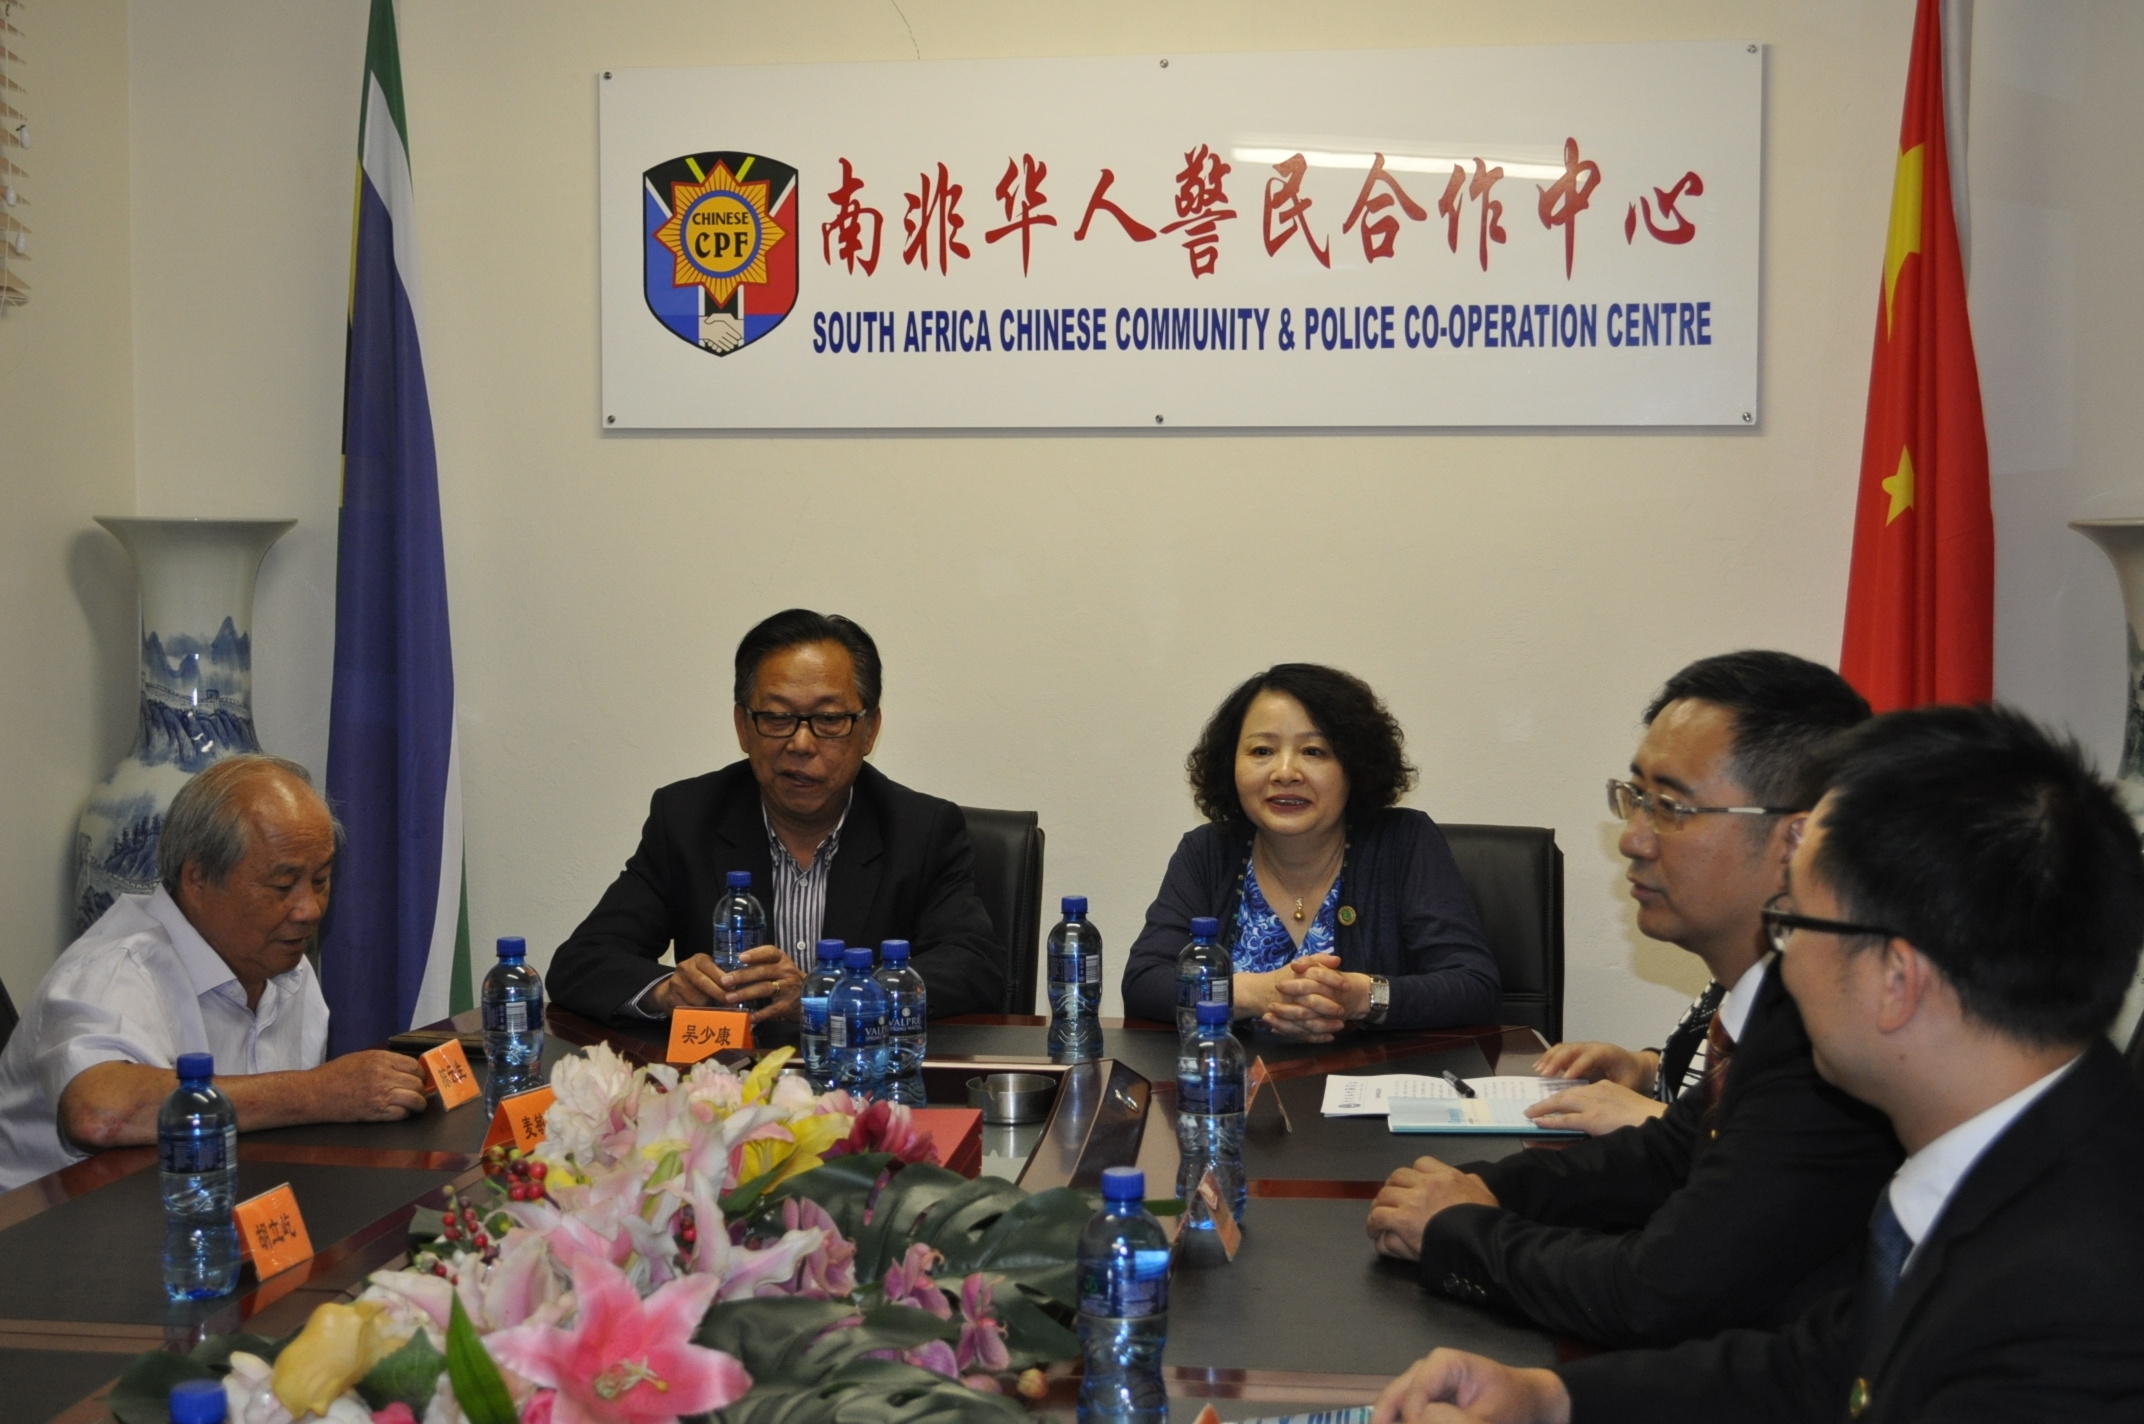 Huanchun Li, Vice President of Guangdong Overseas Friendship Association paid a courtesy visit to the Chinese CPF.